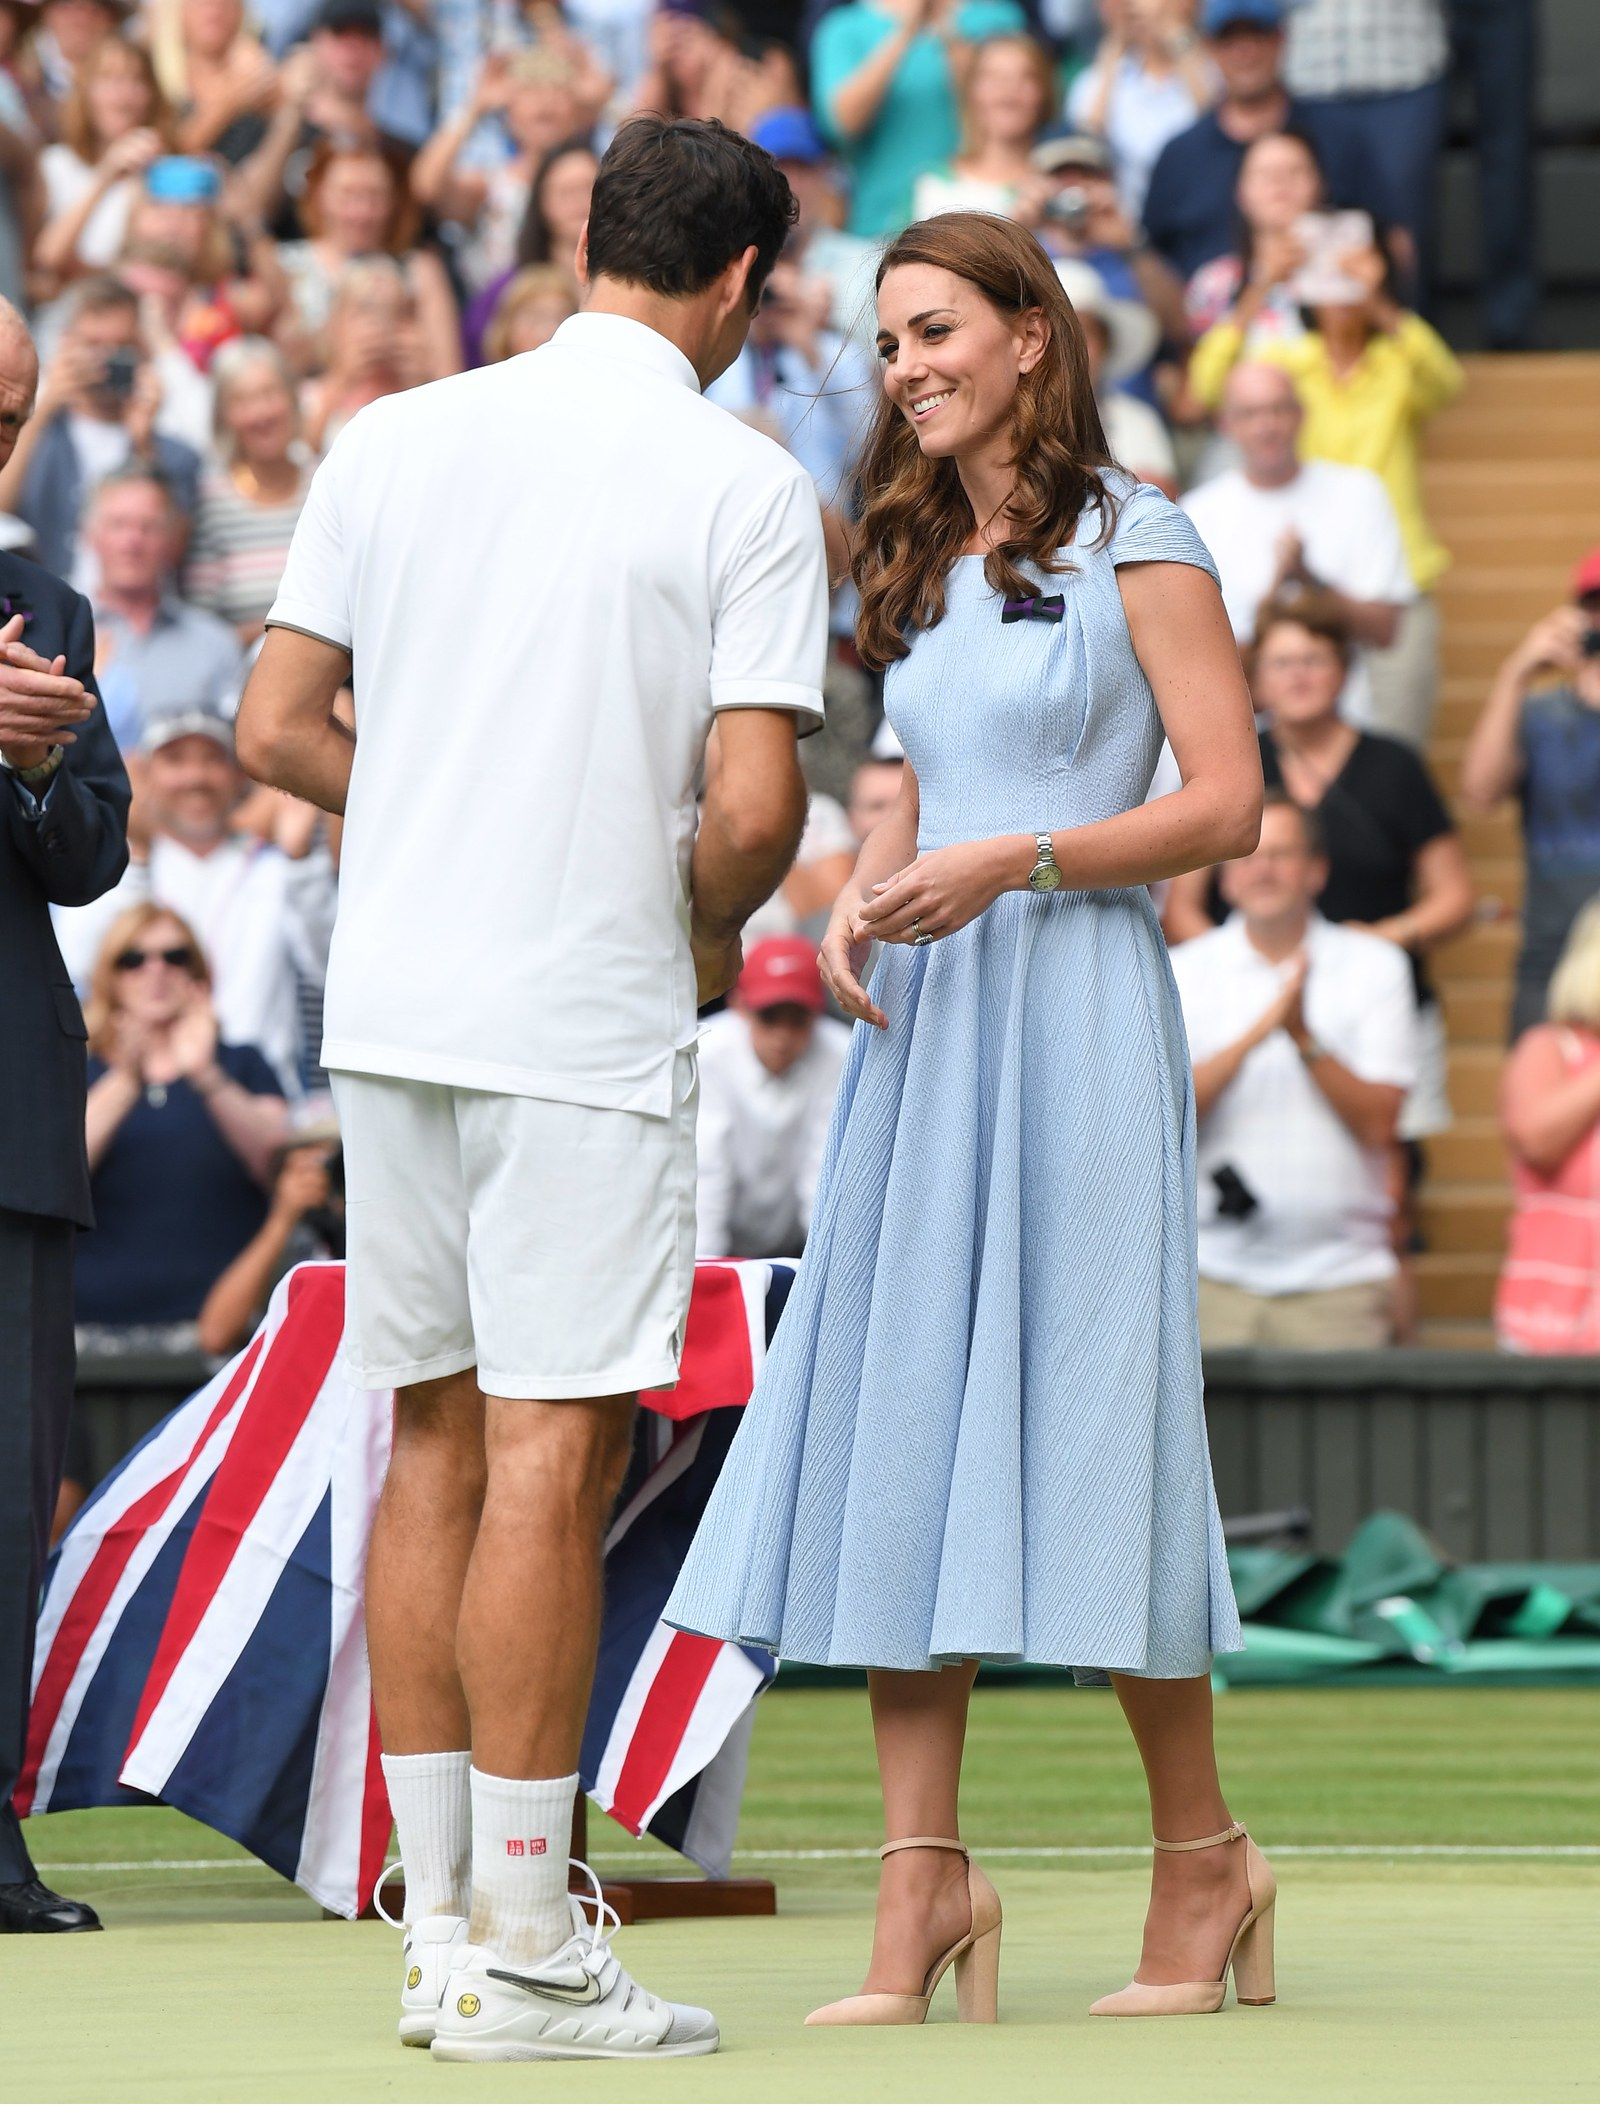 Kate Middleton presents Roger Federer the runnerup trophy at Wimbledon 2019